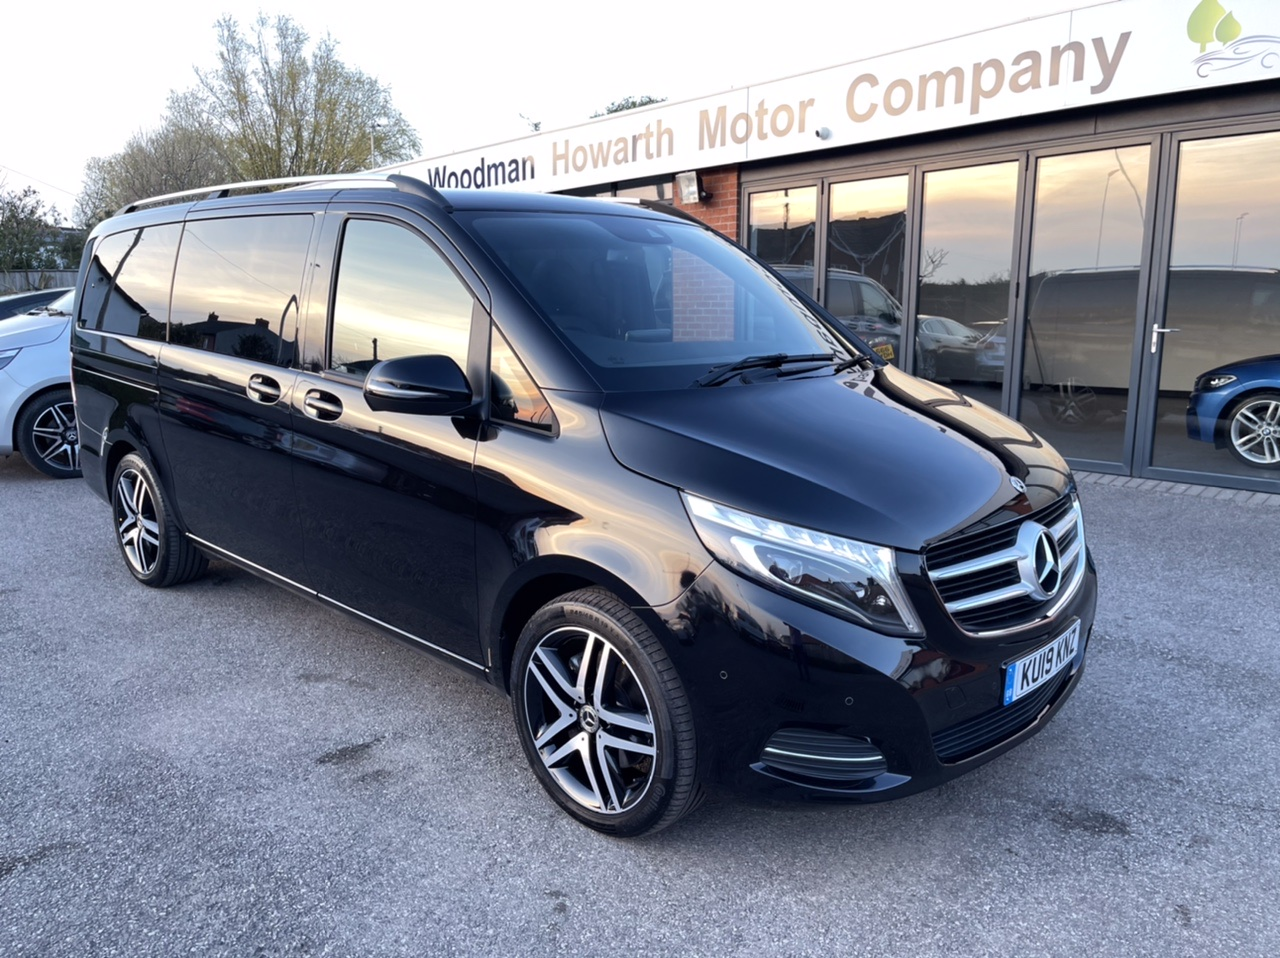 2019 19 MERCEDES BENZ V220 D SPORT LWB 7G-TRONIC AUTO £57K Spec - COMAND - Tow Pack - 19 Inch A/W - Pan Roof ++